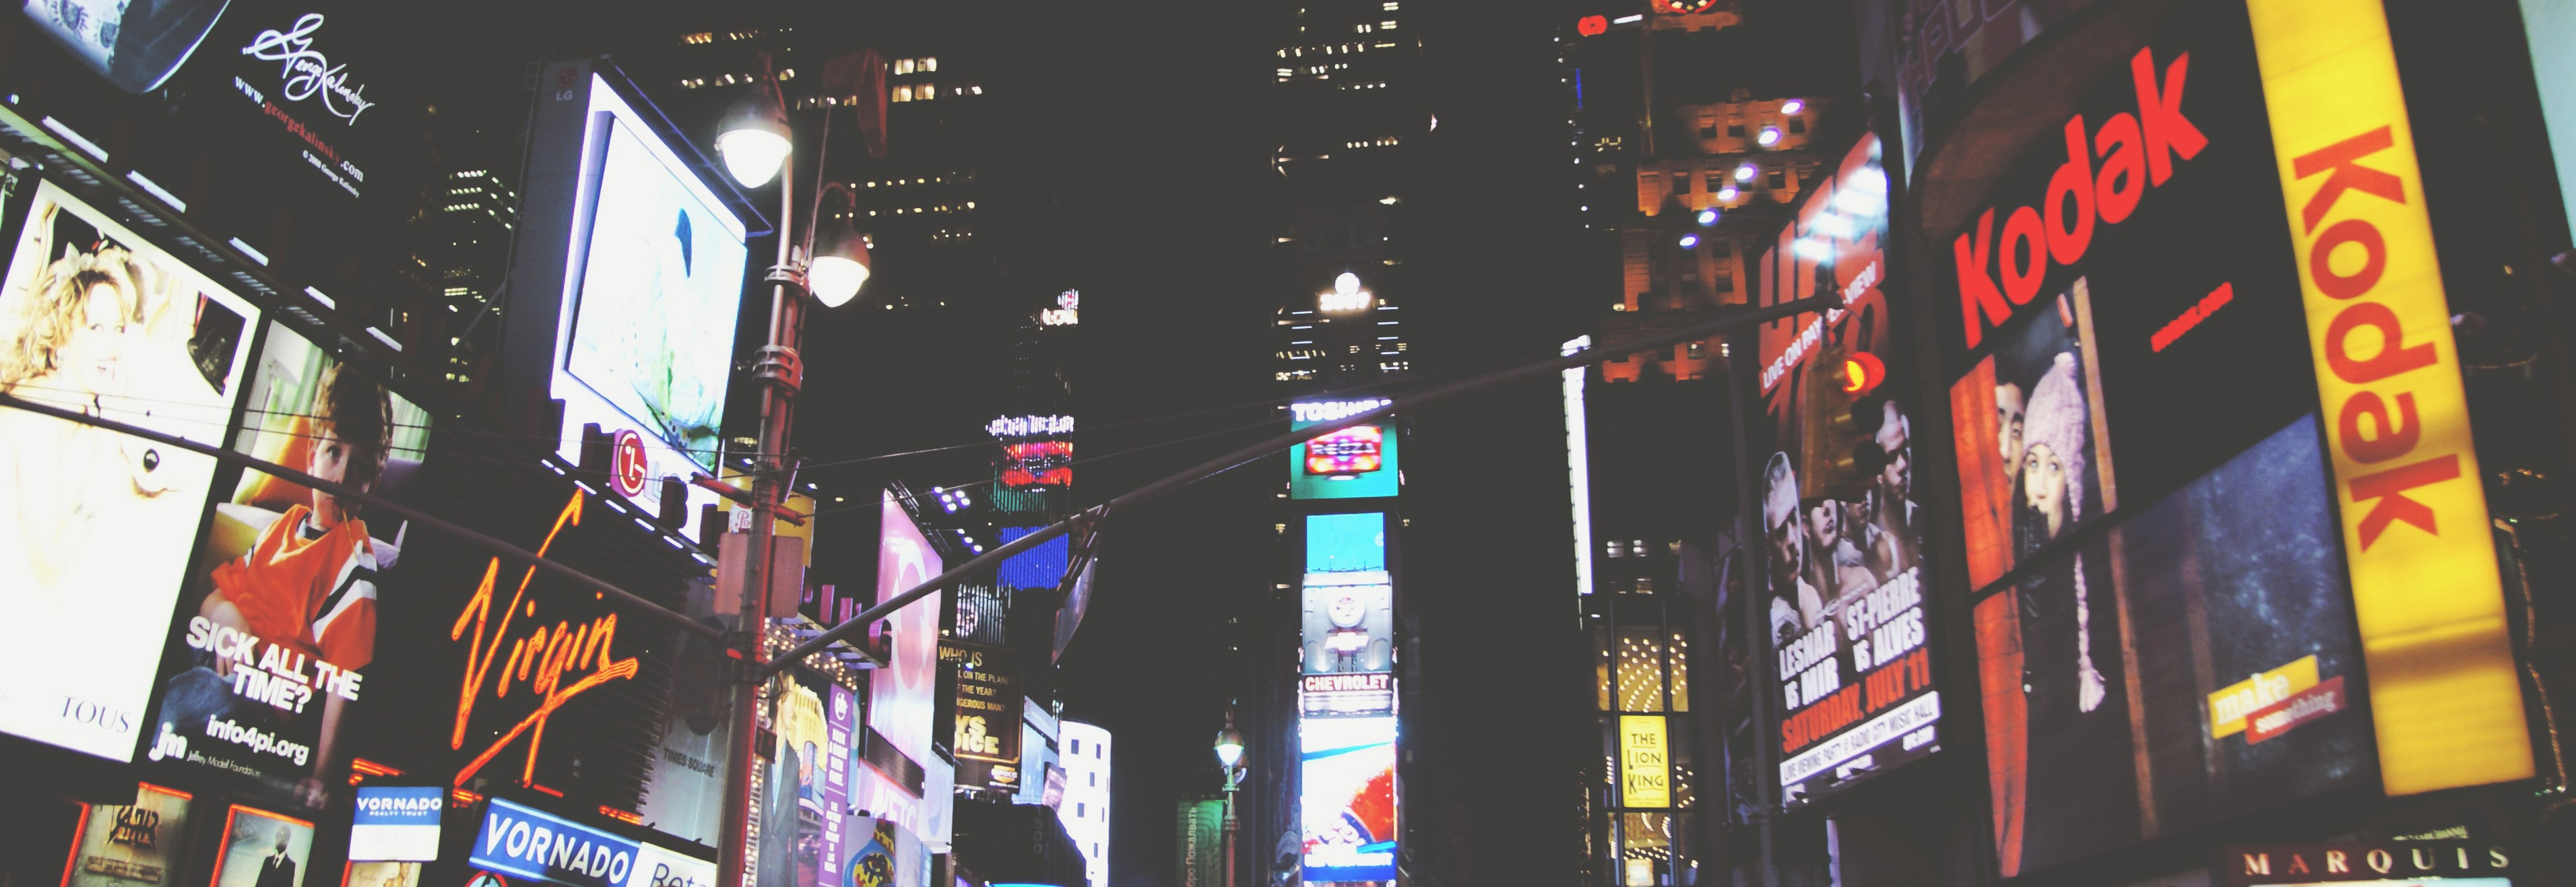 city-marketing-lights-night.jpg